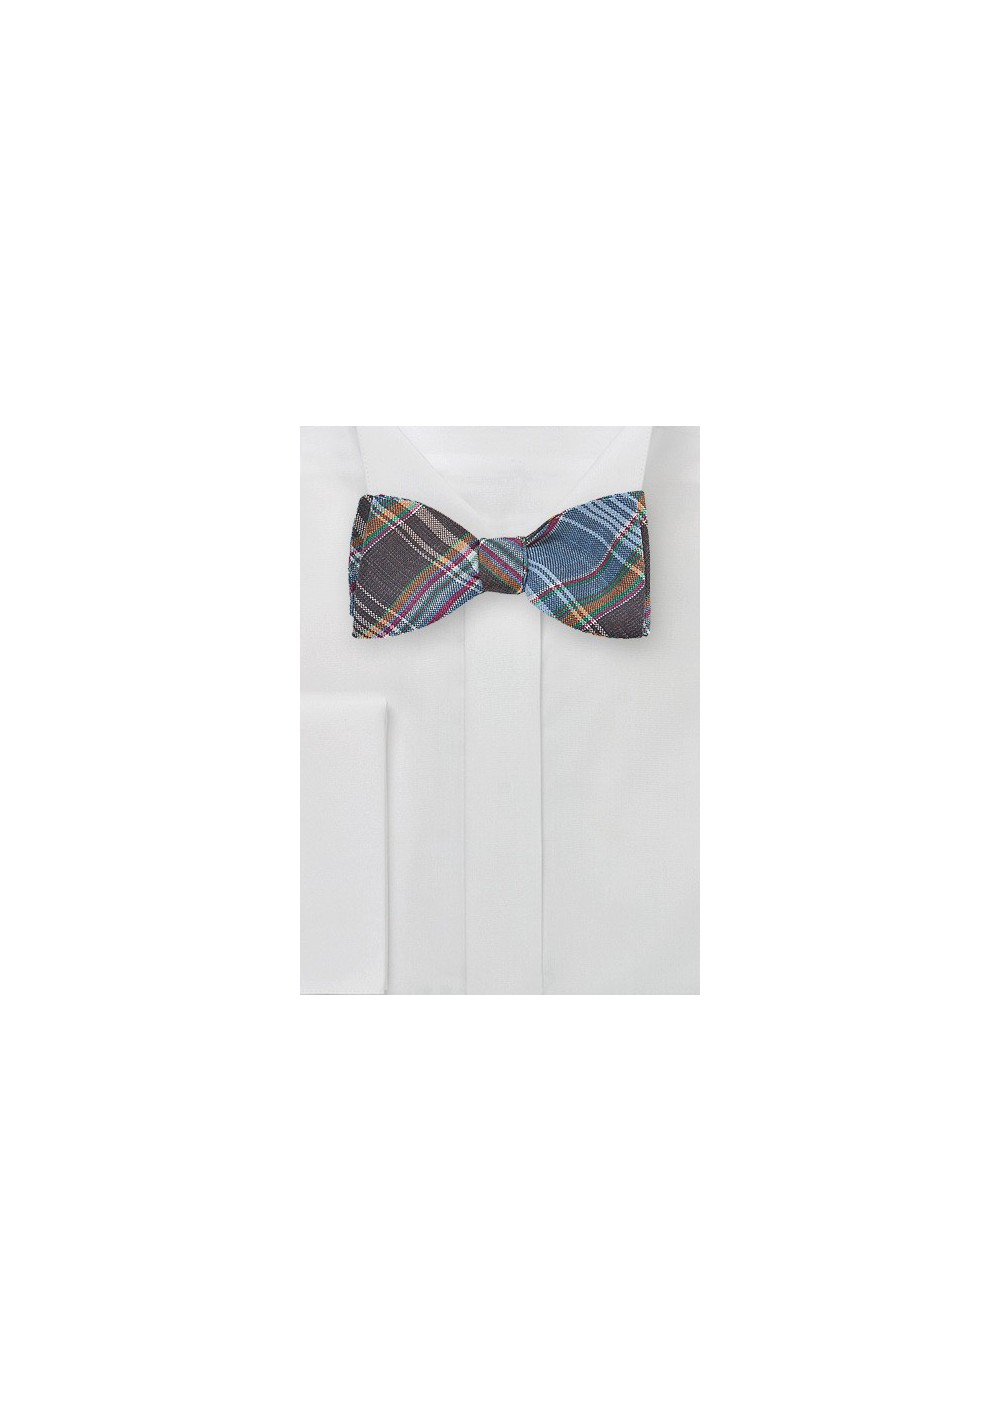 Autumn Madras Bow Bow Tie in Brown and Blue